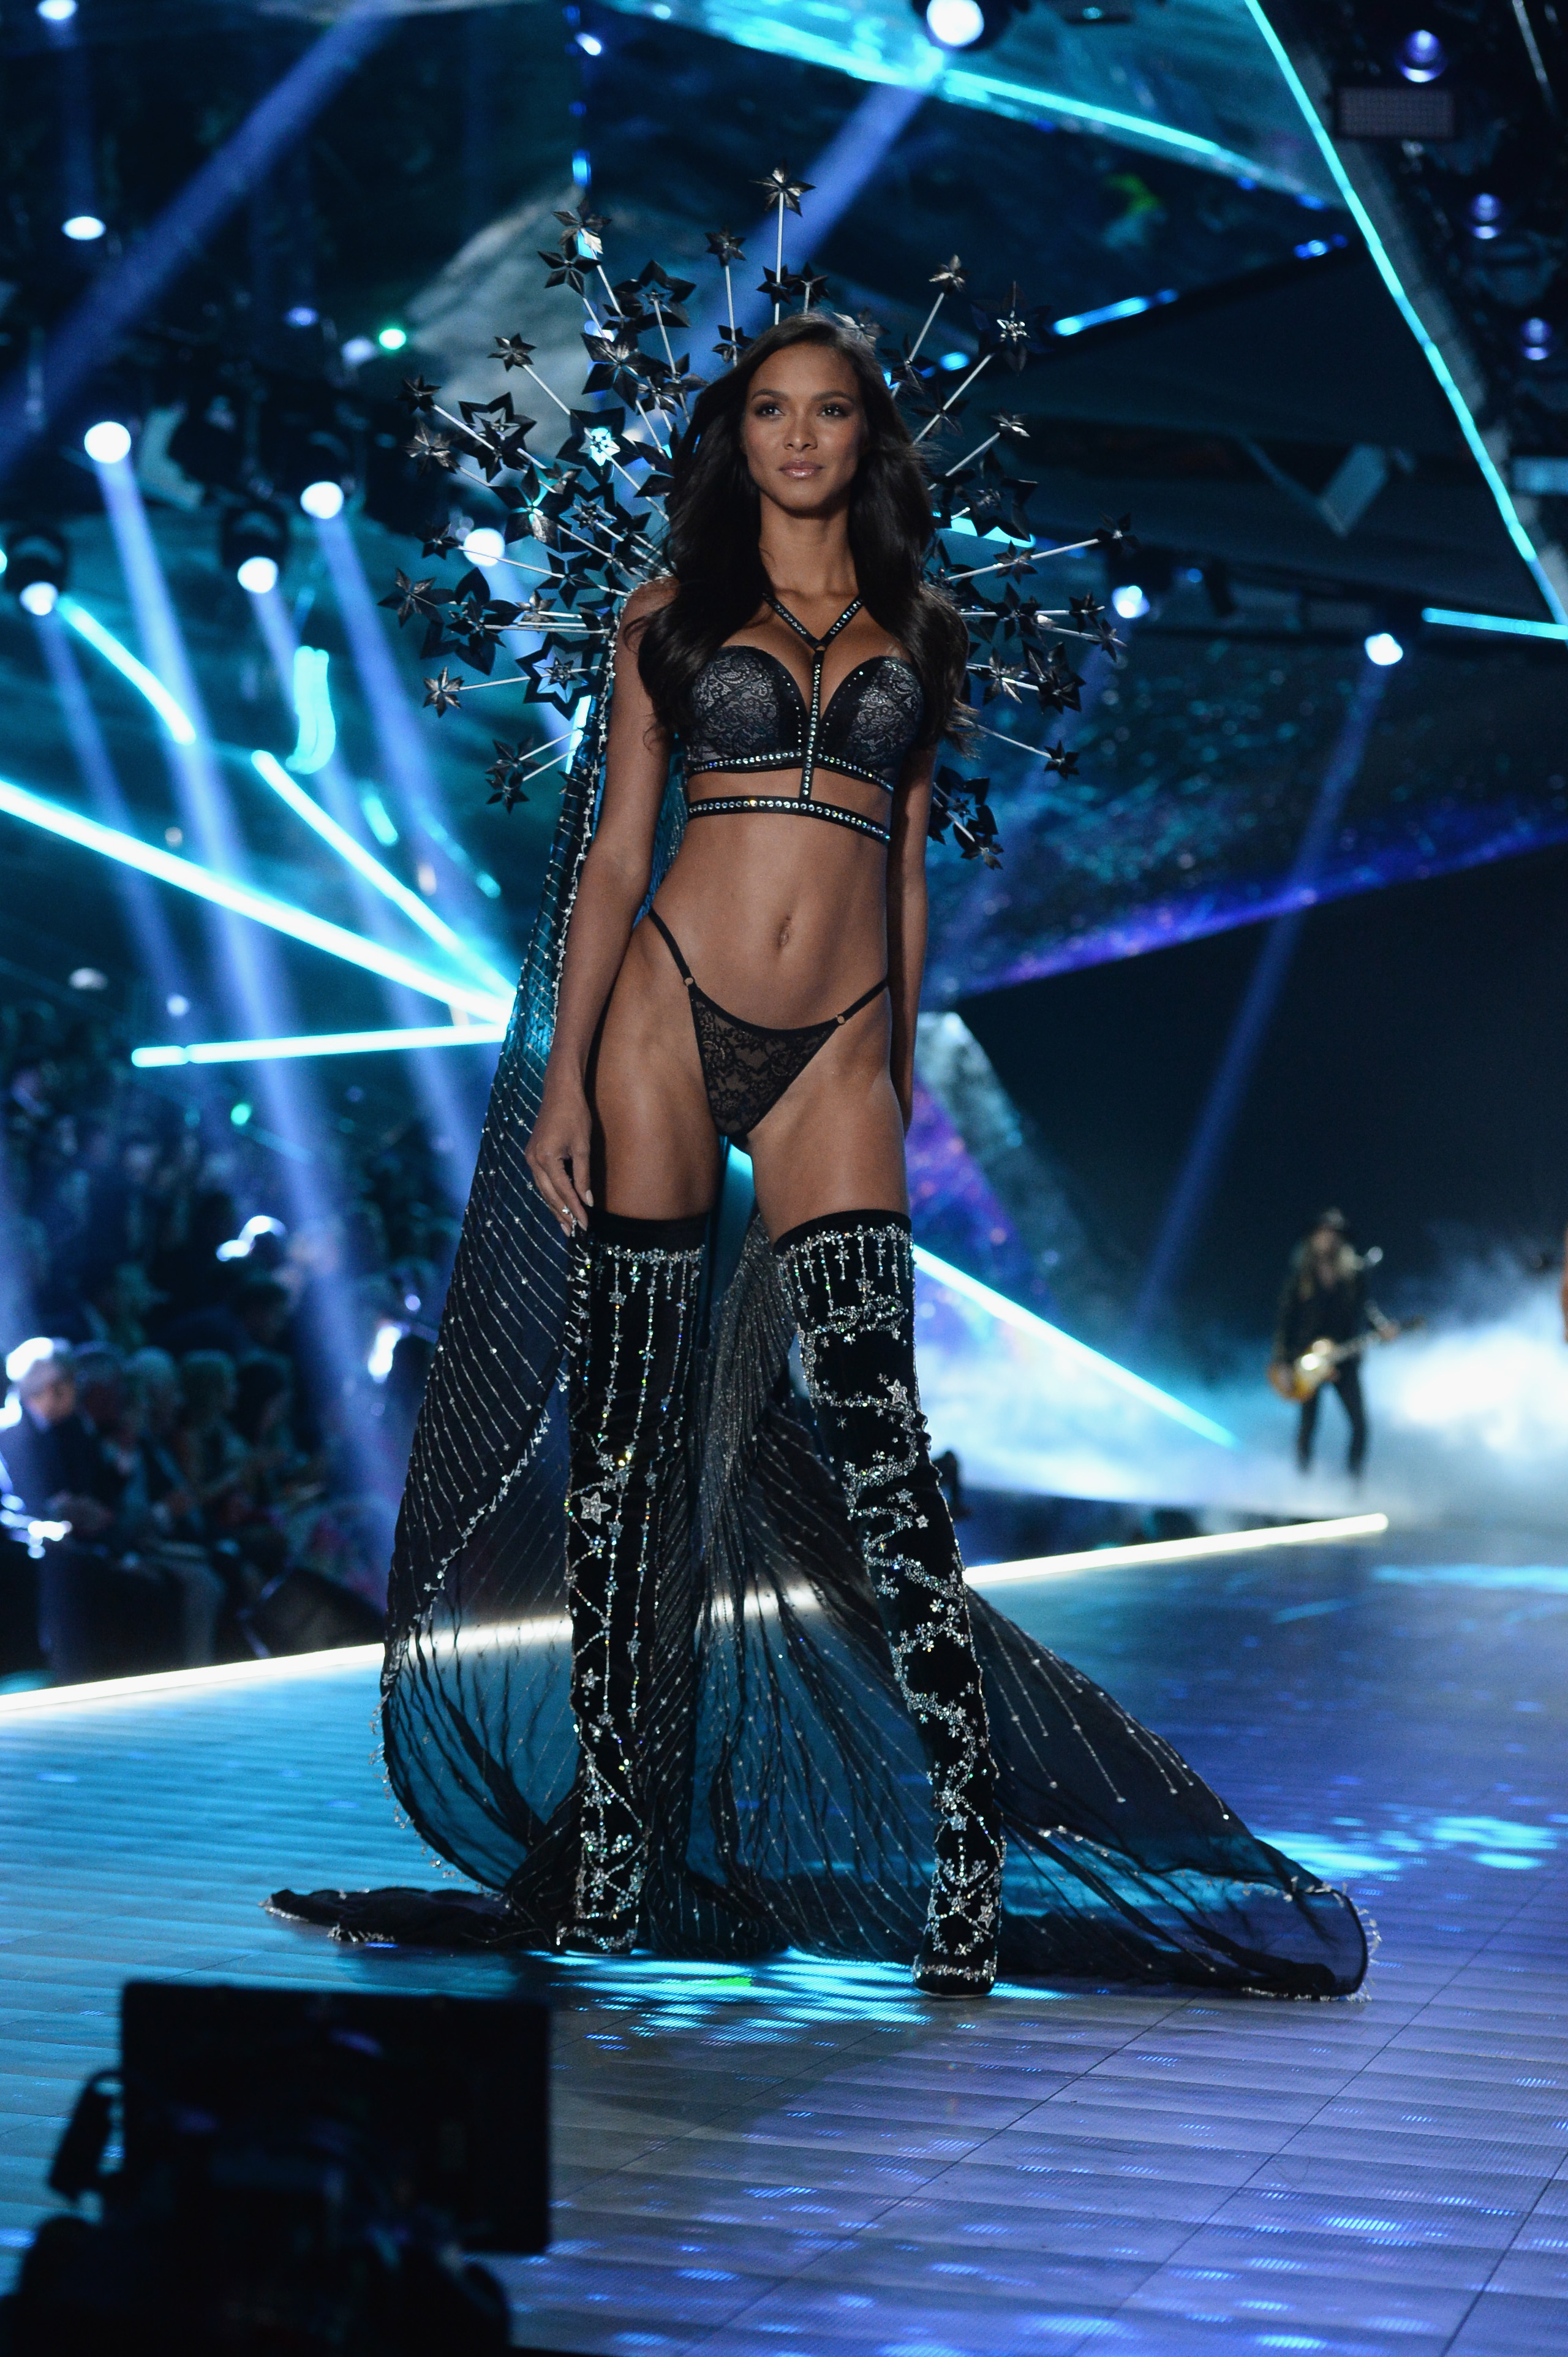 Lais Ribeiro walks the runway during the 2018 Victoria's Secret Fashion Show at Pier 94 on November 08, 2018, in New York City. (Getty Images)